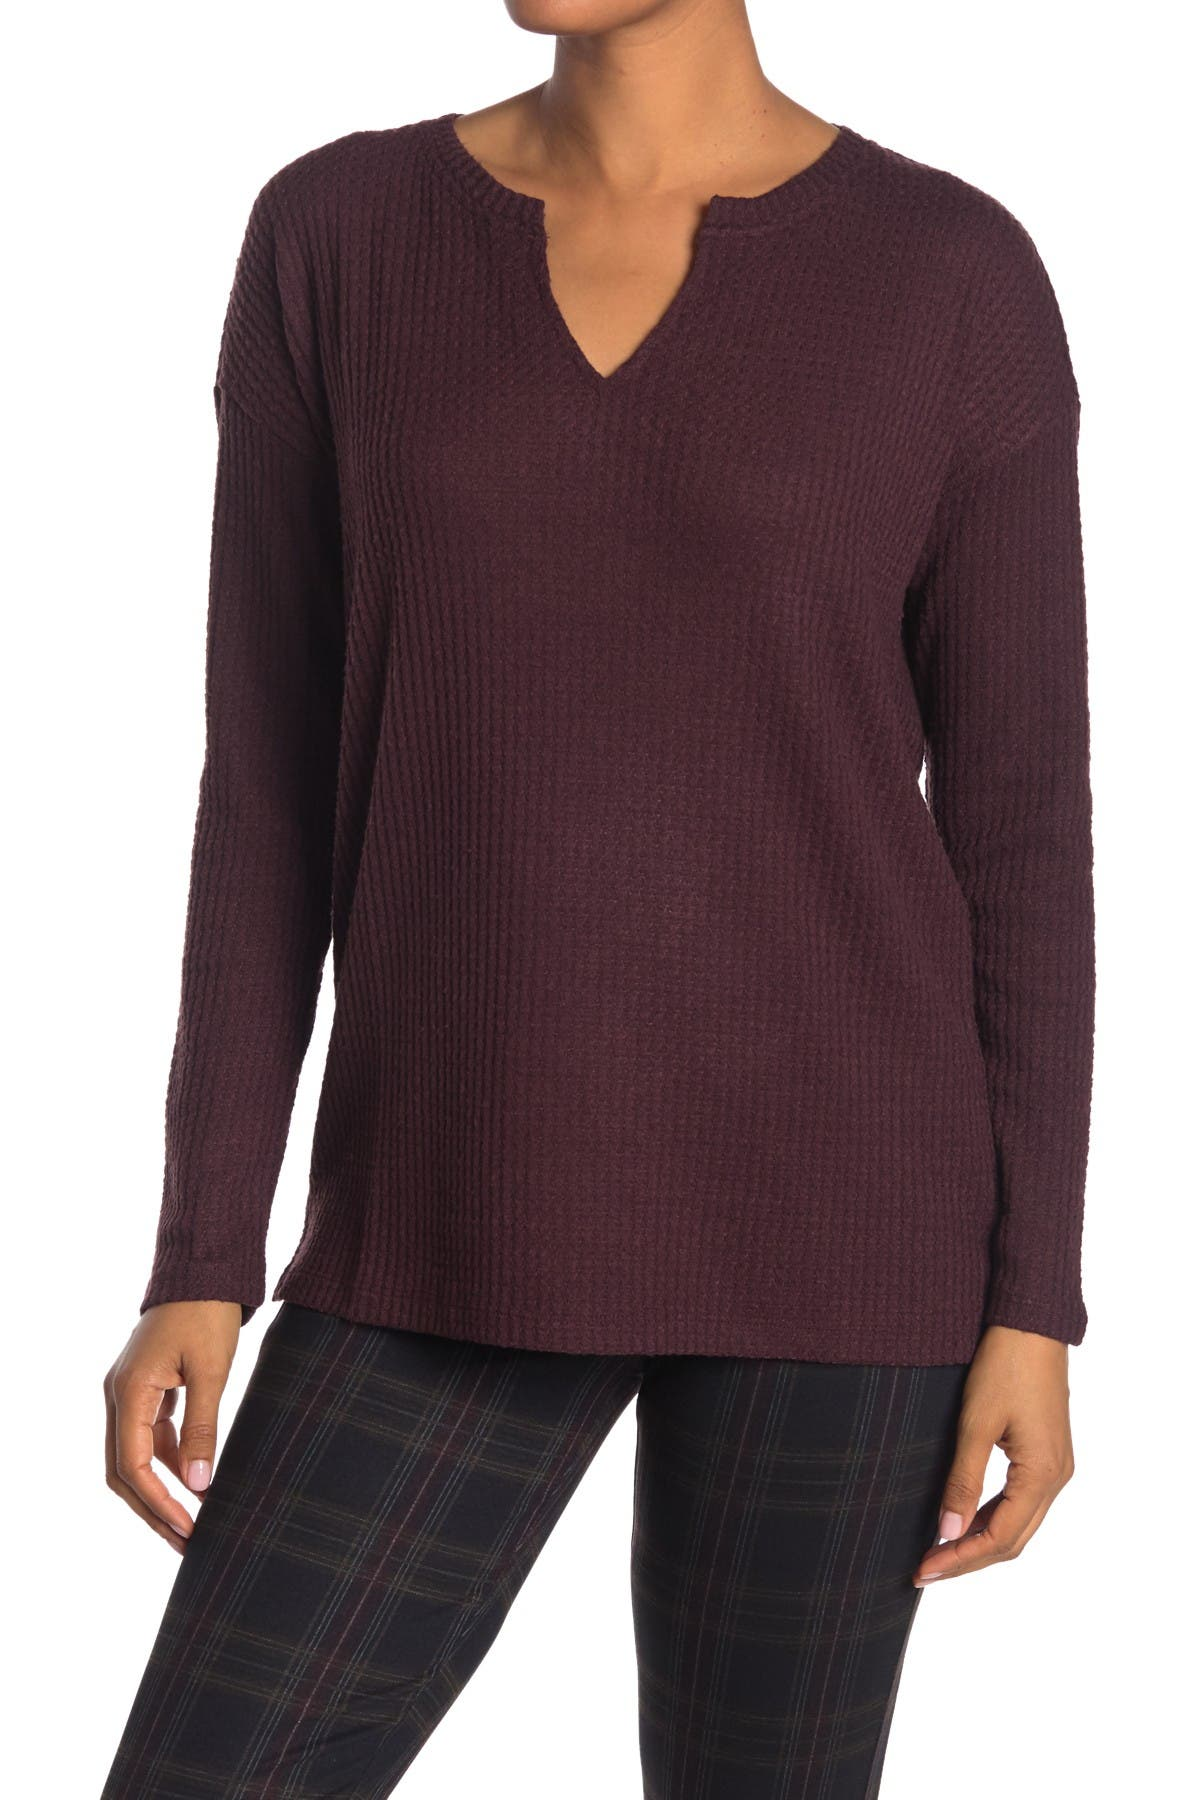 Image of Sanctuary Cozy Split Neck Long Sleeve Thermal Top